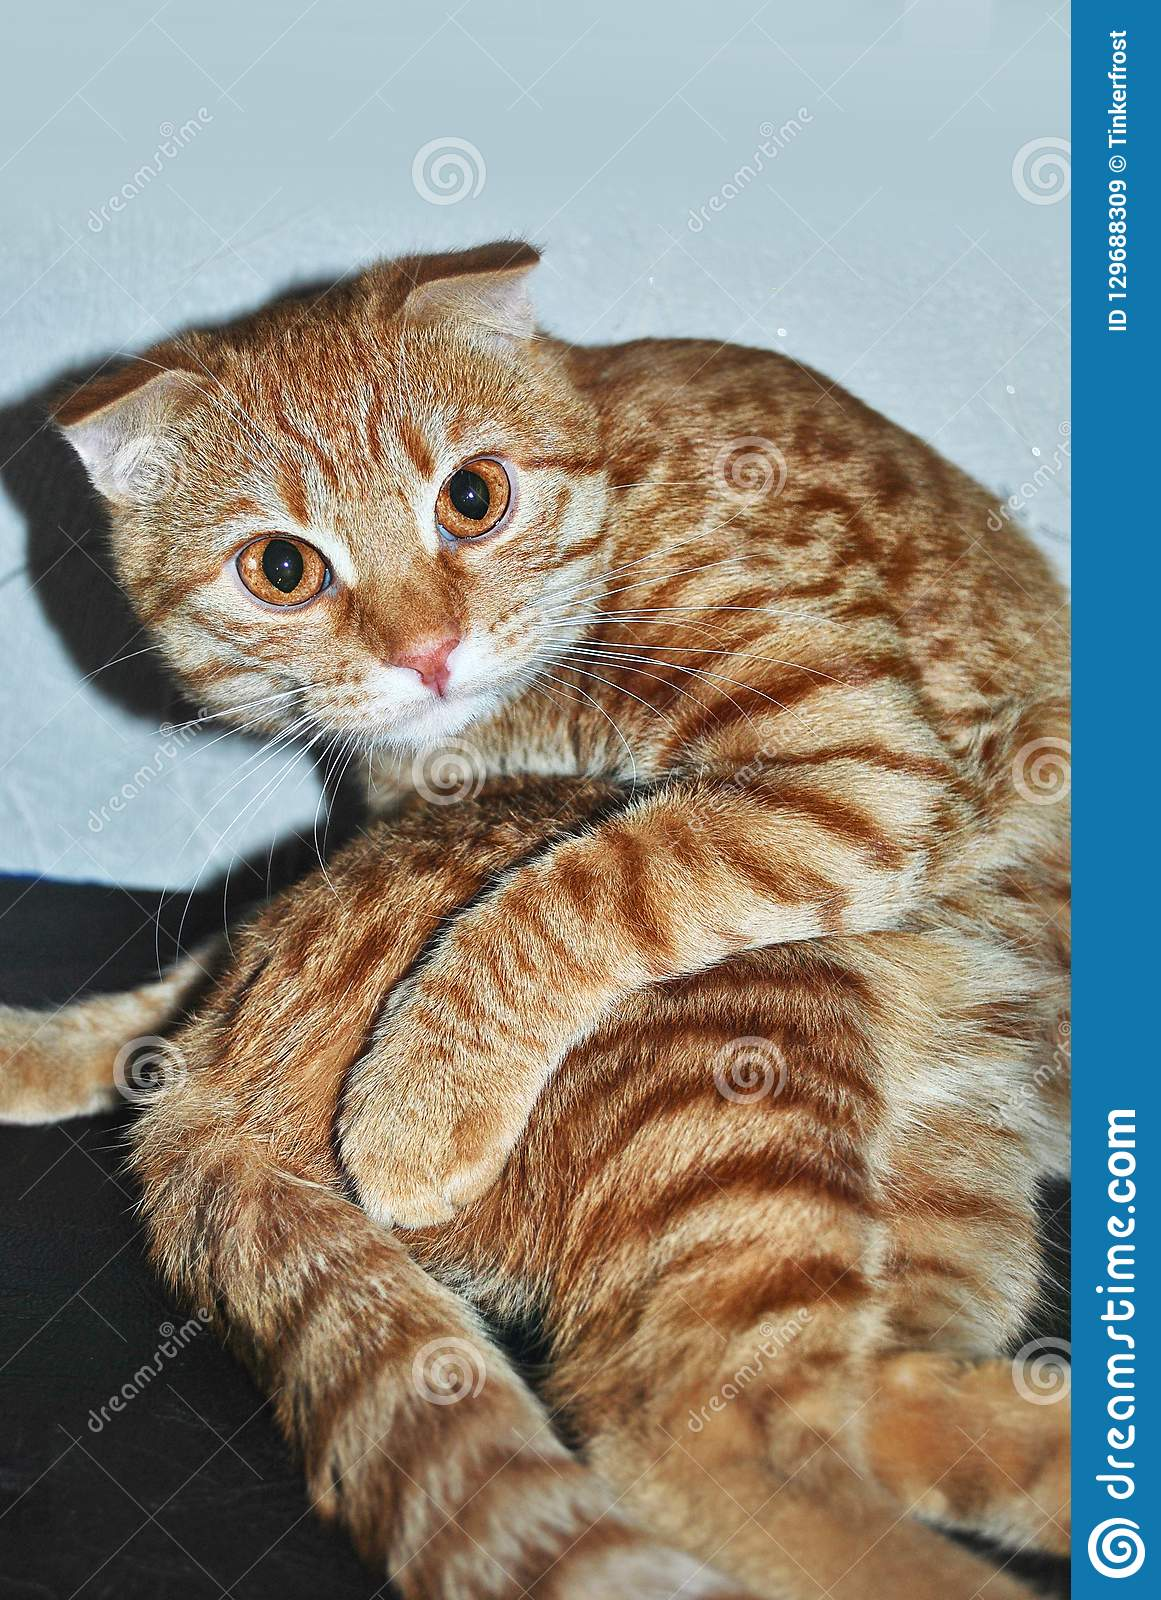 Funny Ginger Cat In Yoga Pose Stock Image Image Of Portrait Ginger 129688309